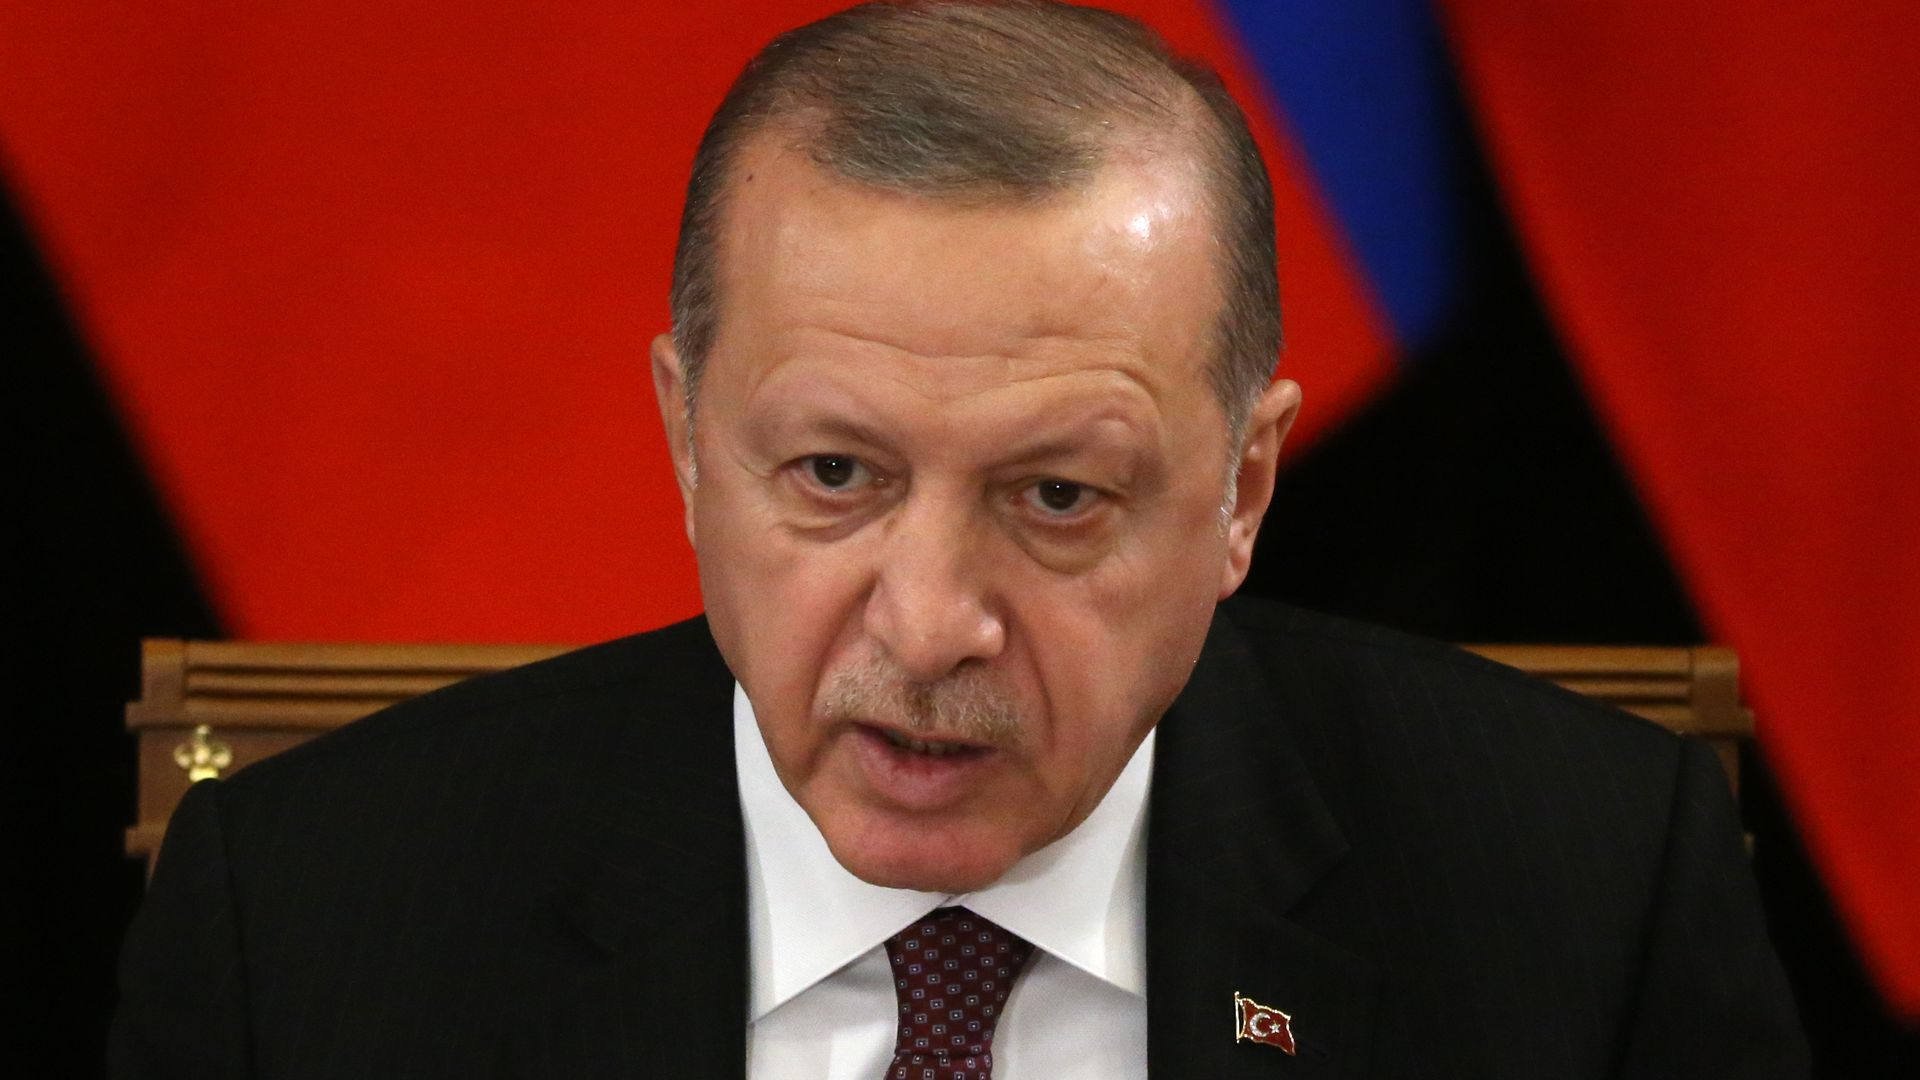 Turkish President Recep Erdogan says Turkey will make the Christchurch attacks suspect pay if New Zealand doesn't.